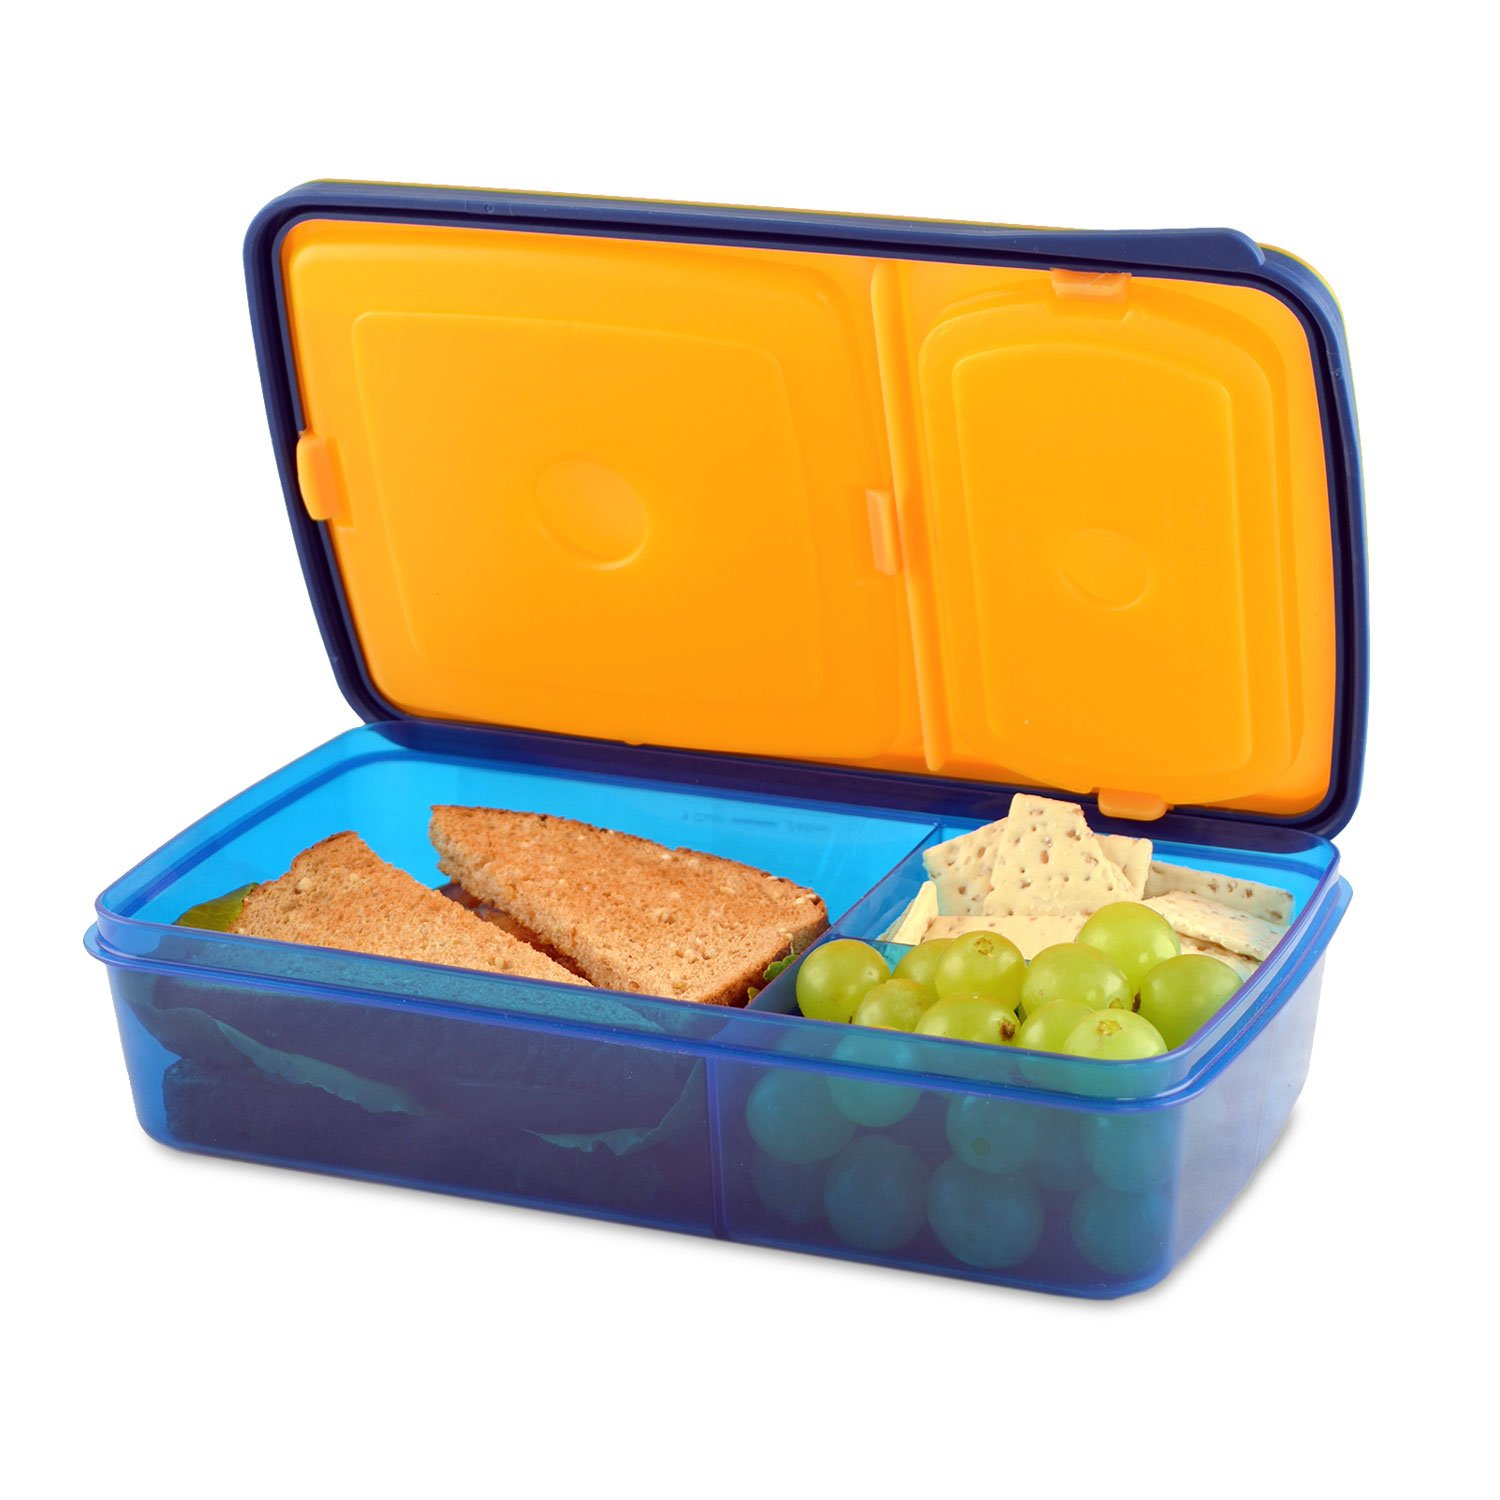 fit fresh soft touch bento lunch box 3 compartments kids. Black Bedroom Furniture Sets. Home Design Ideas